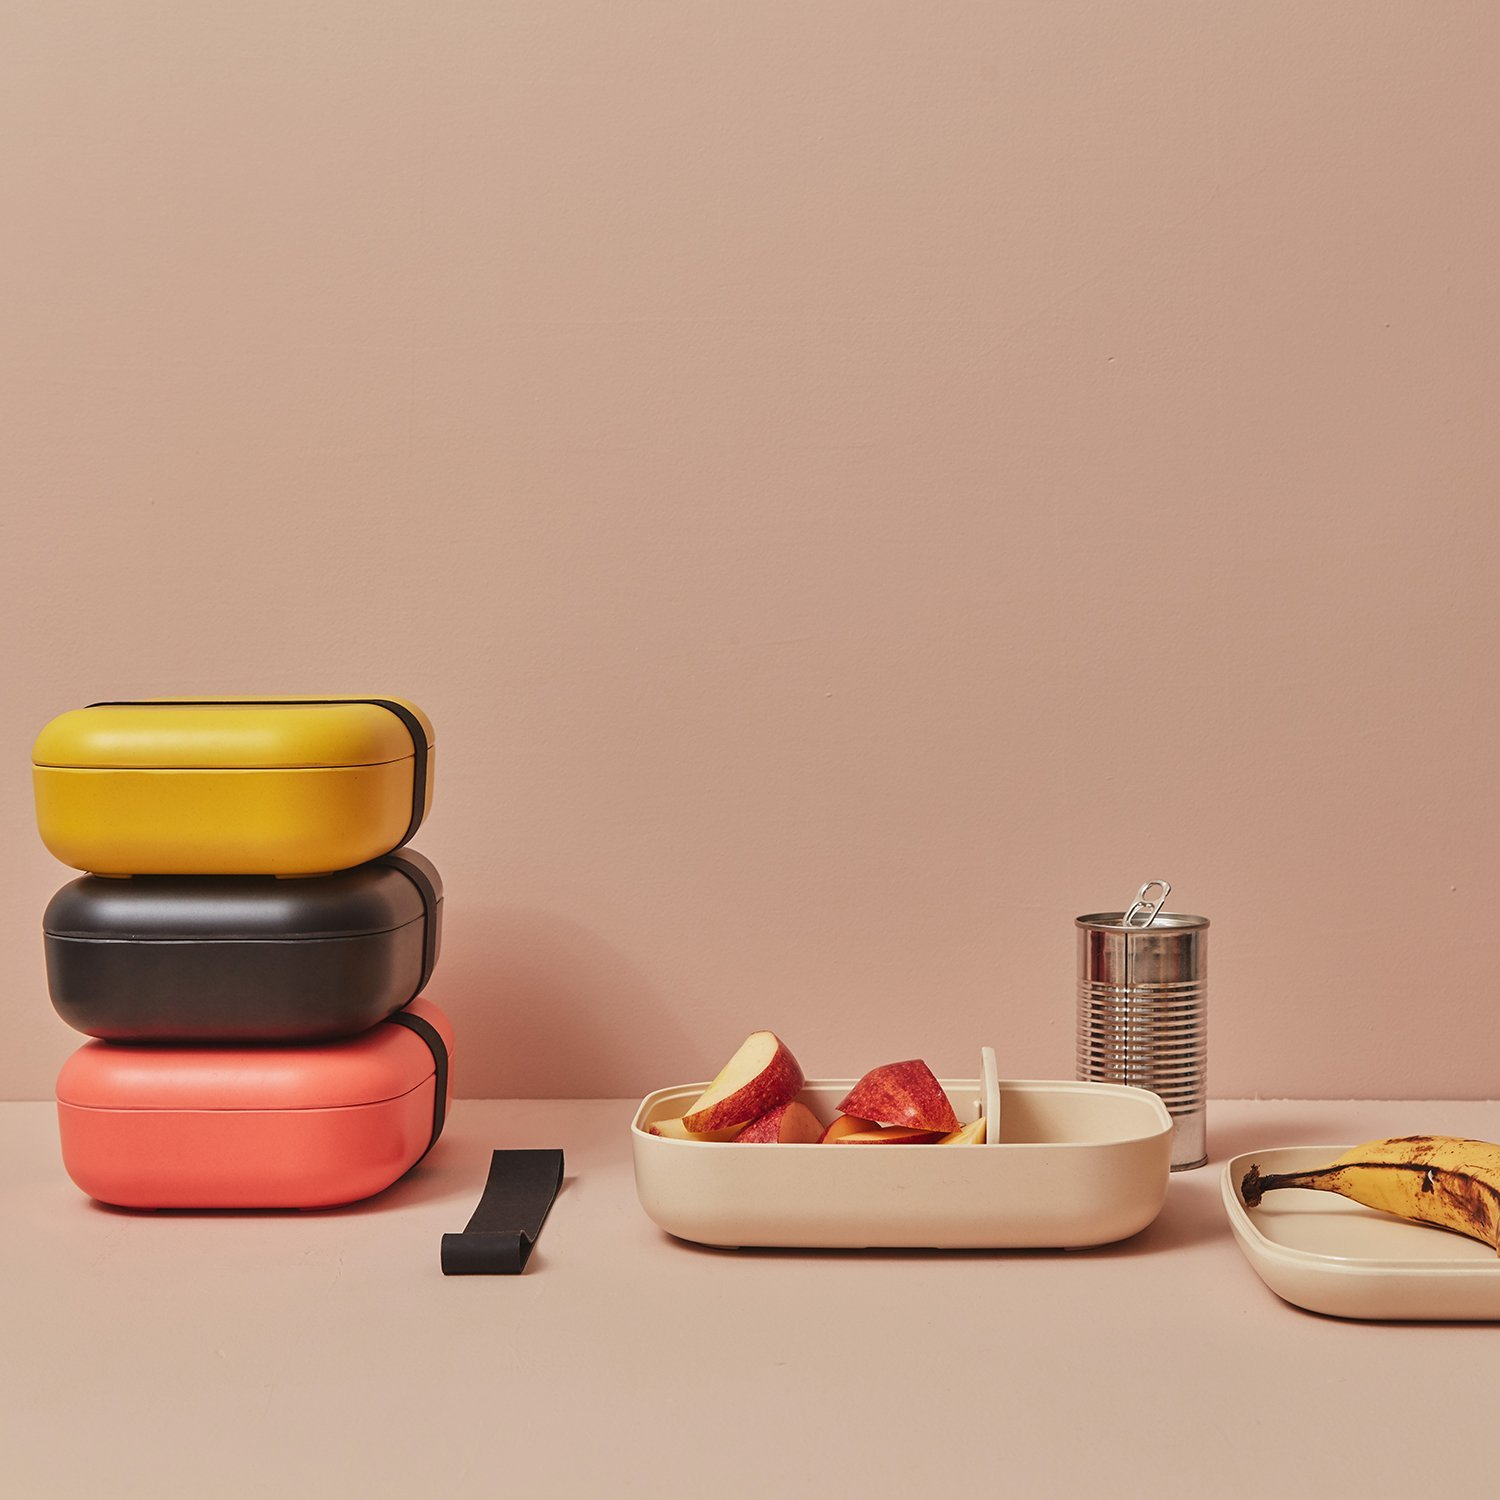 Set of four bento boxes in different colors, one with apples inside